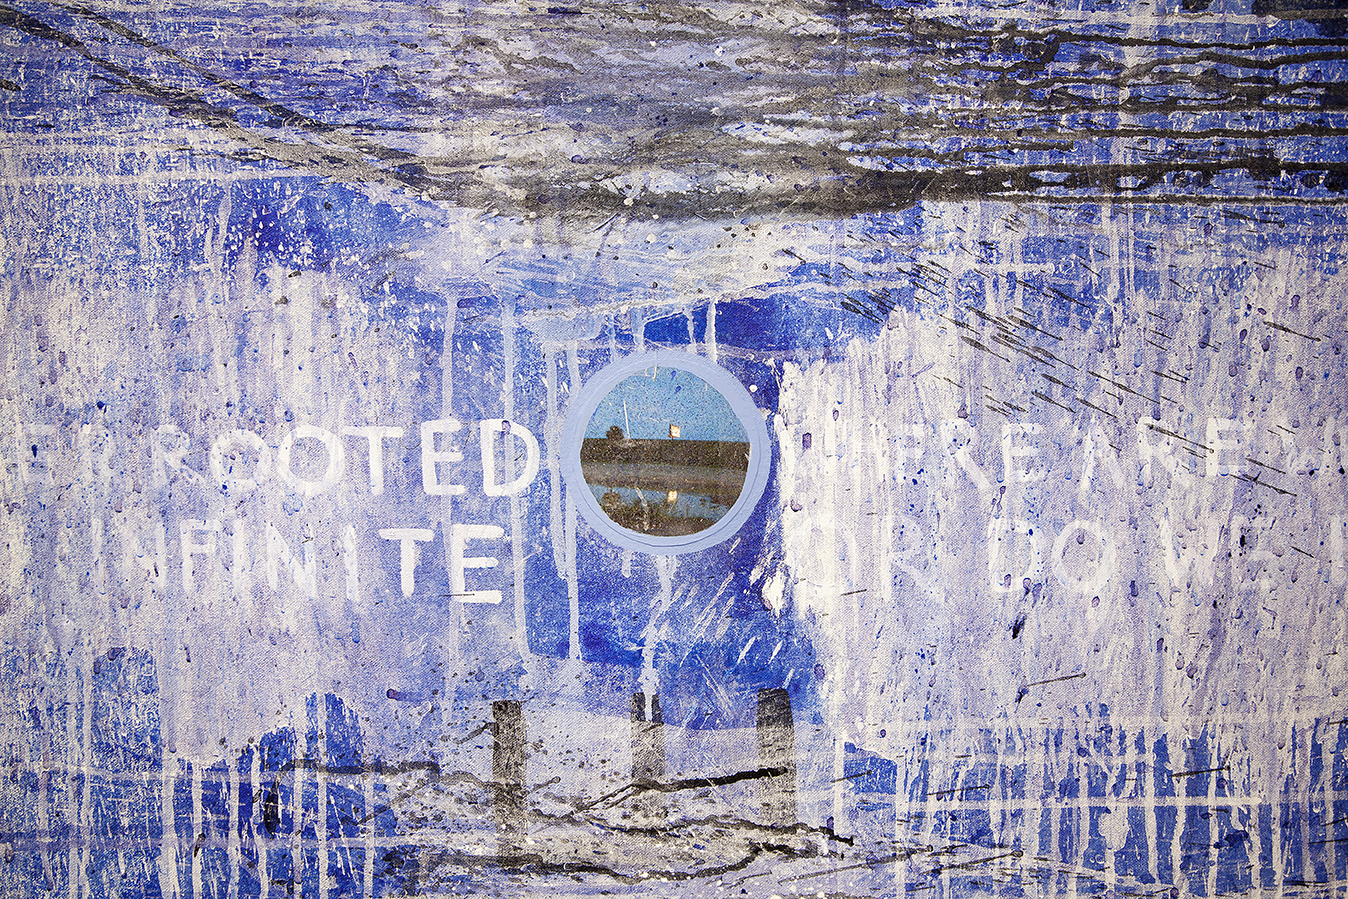 where are borders rooted where are we are infinite or do we end at the sea  (detail), 2018, acrylic and inkjet prints on canvas, 64 x 64 in